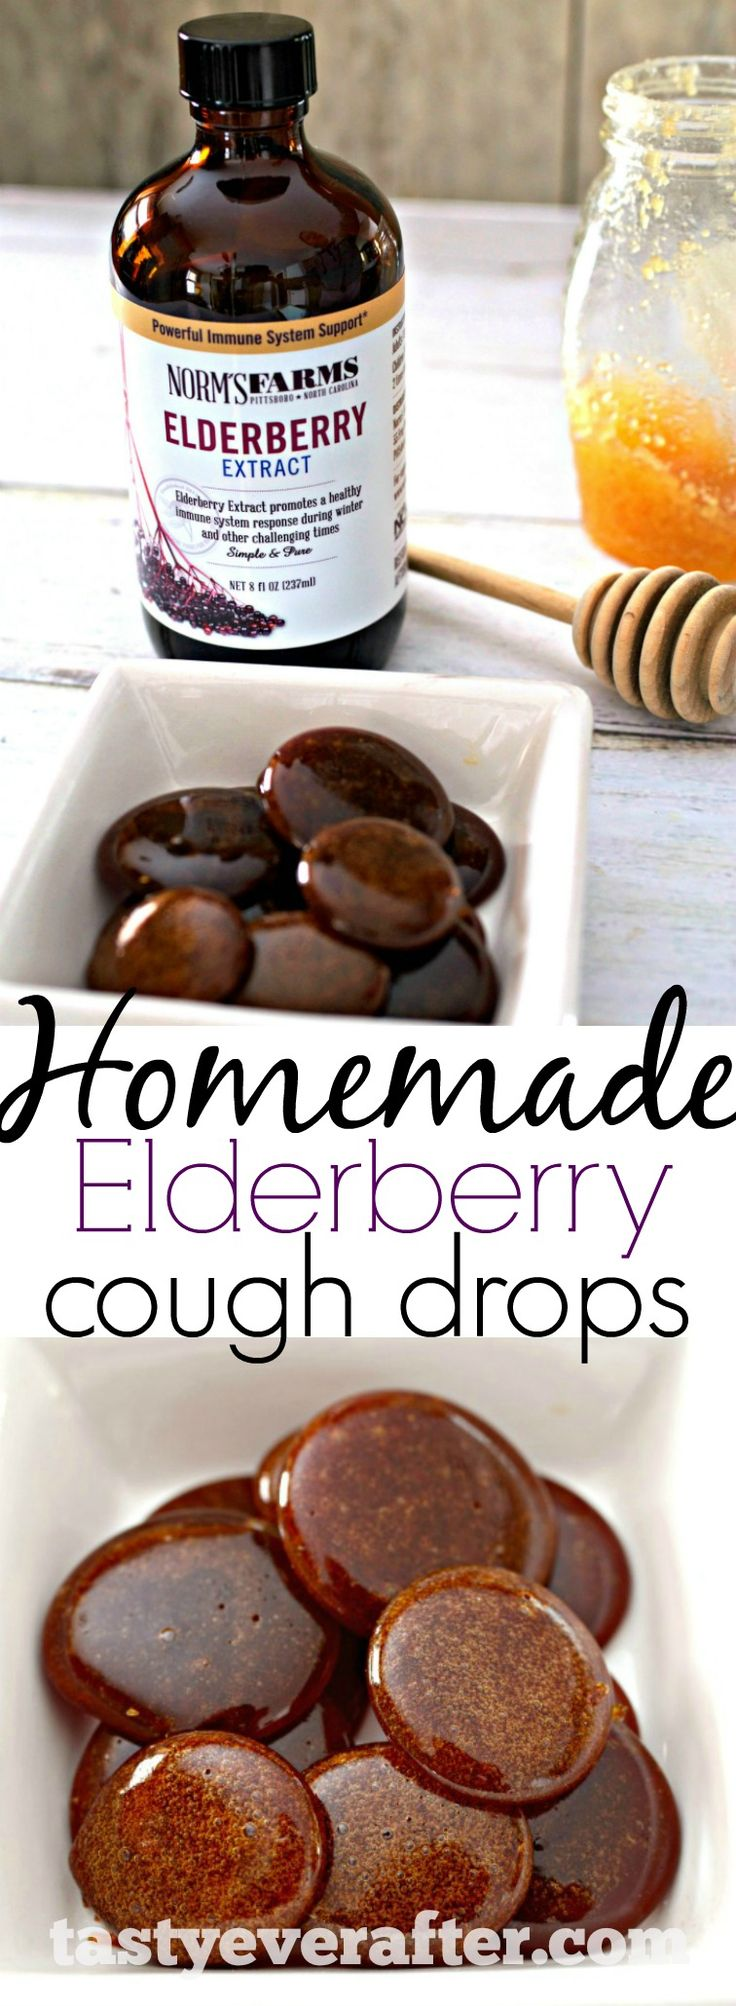 Homemade immune boosting, all-natural cough drops made with just 3 ingredients and in less than 20 minutes! Made with @normsfarms Elderberry Extract.